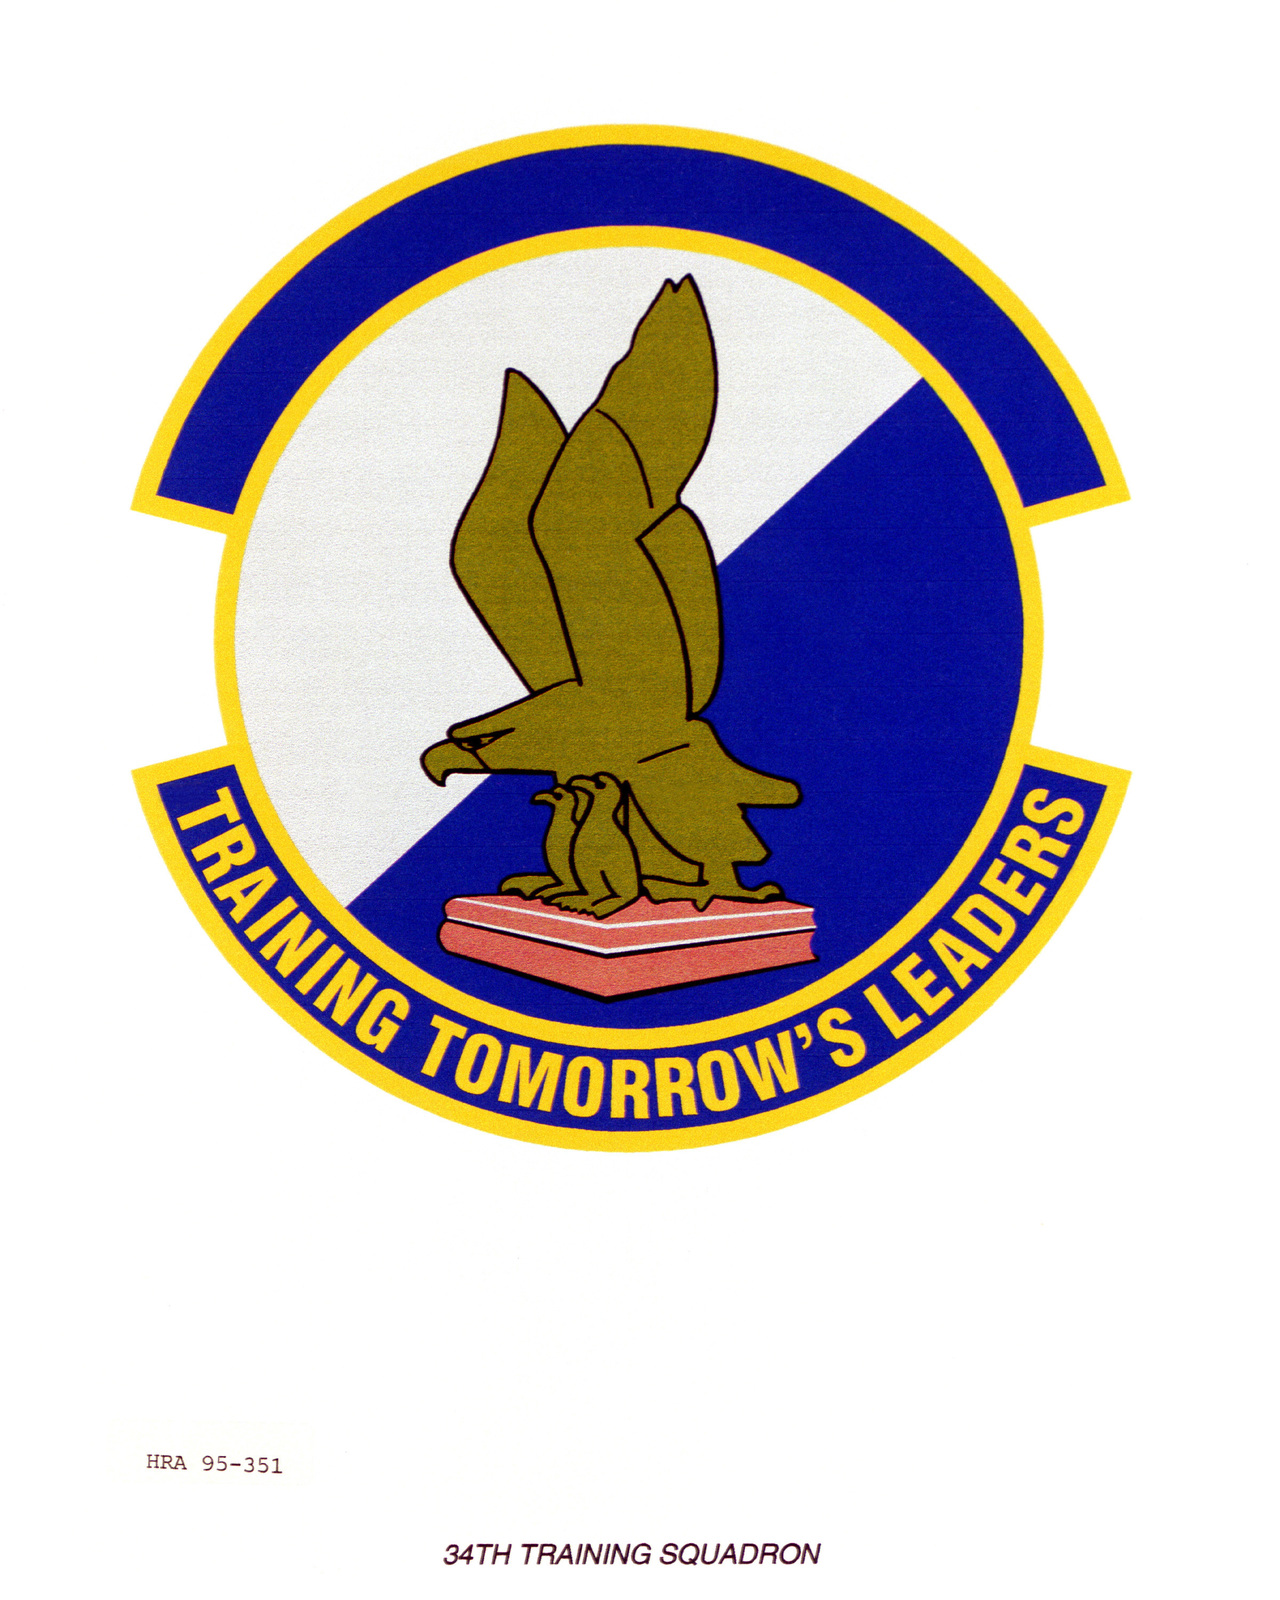 Approved Insignia for the 34th Training Squadron Exact Date Shot Unknown